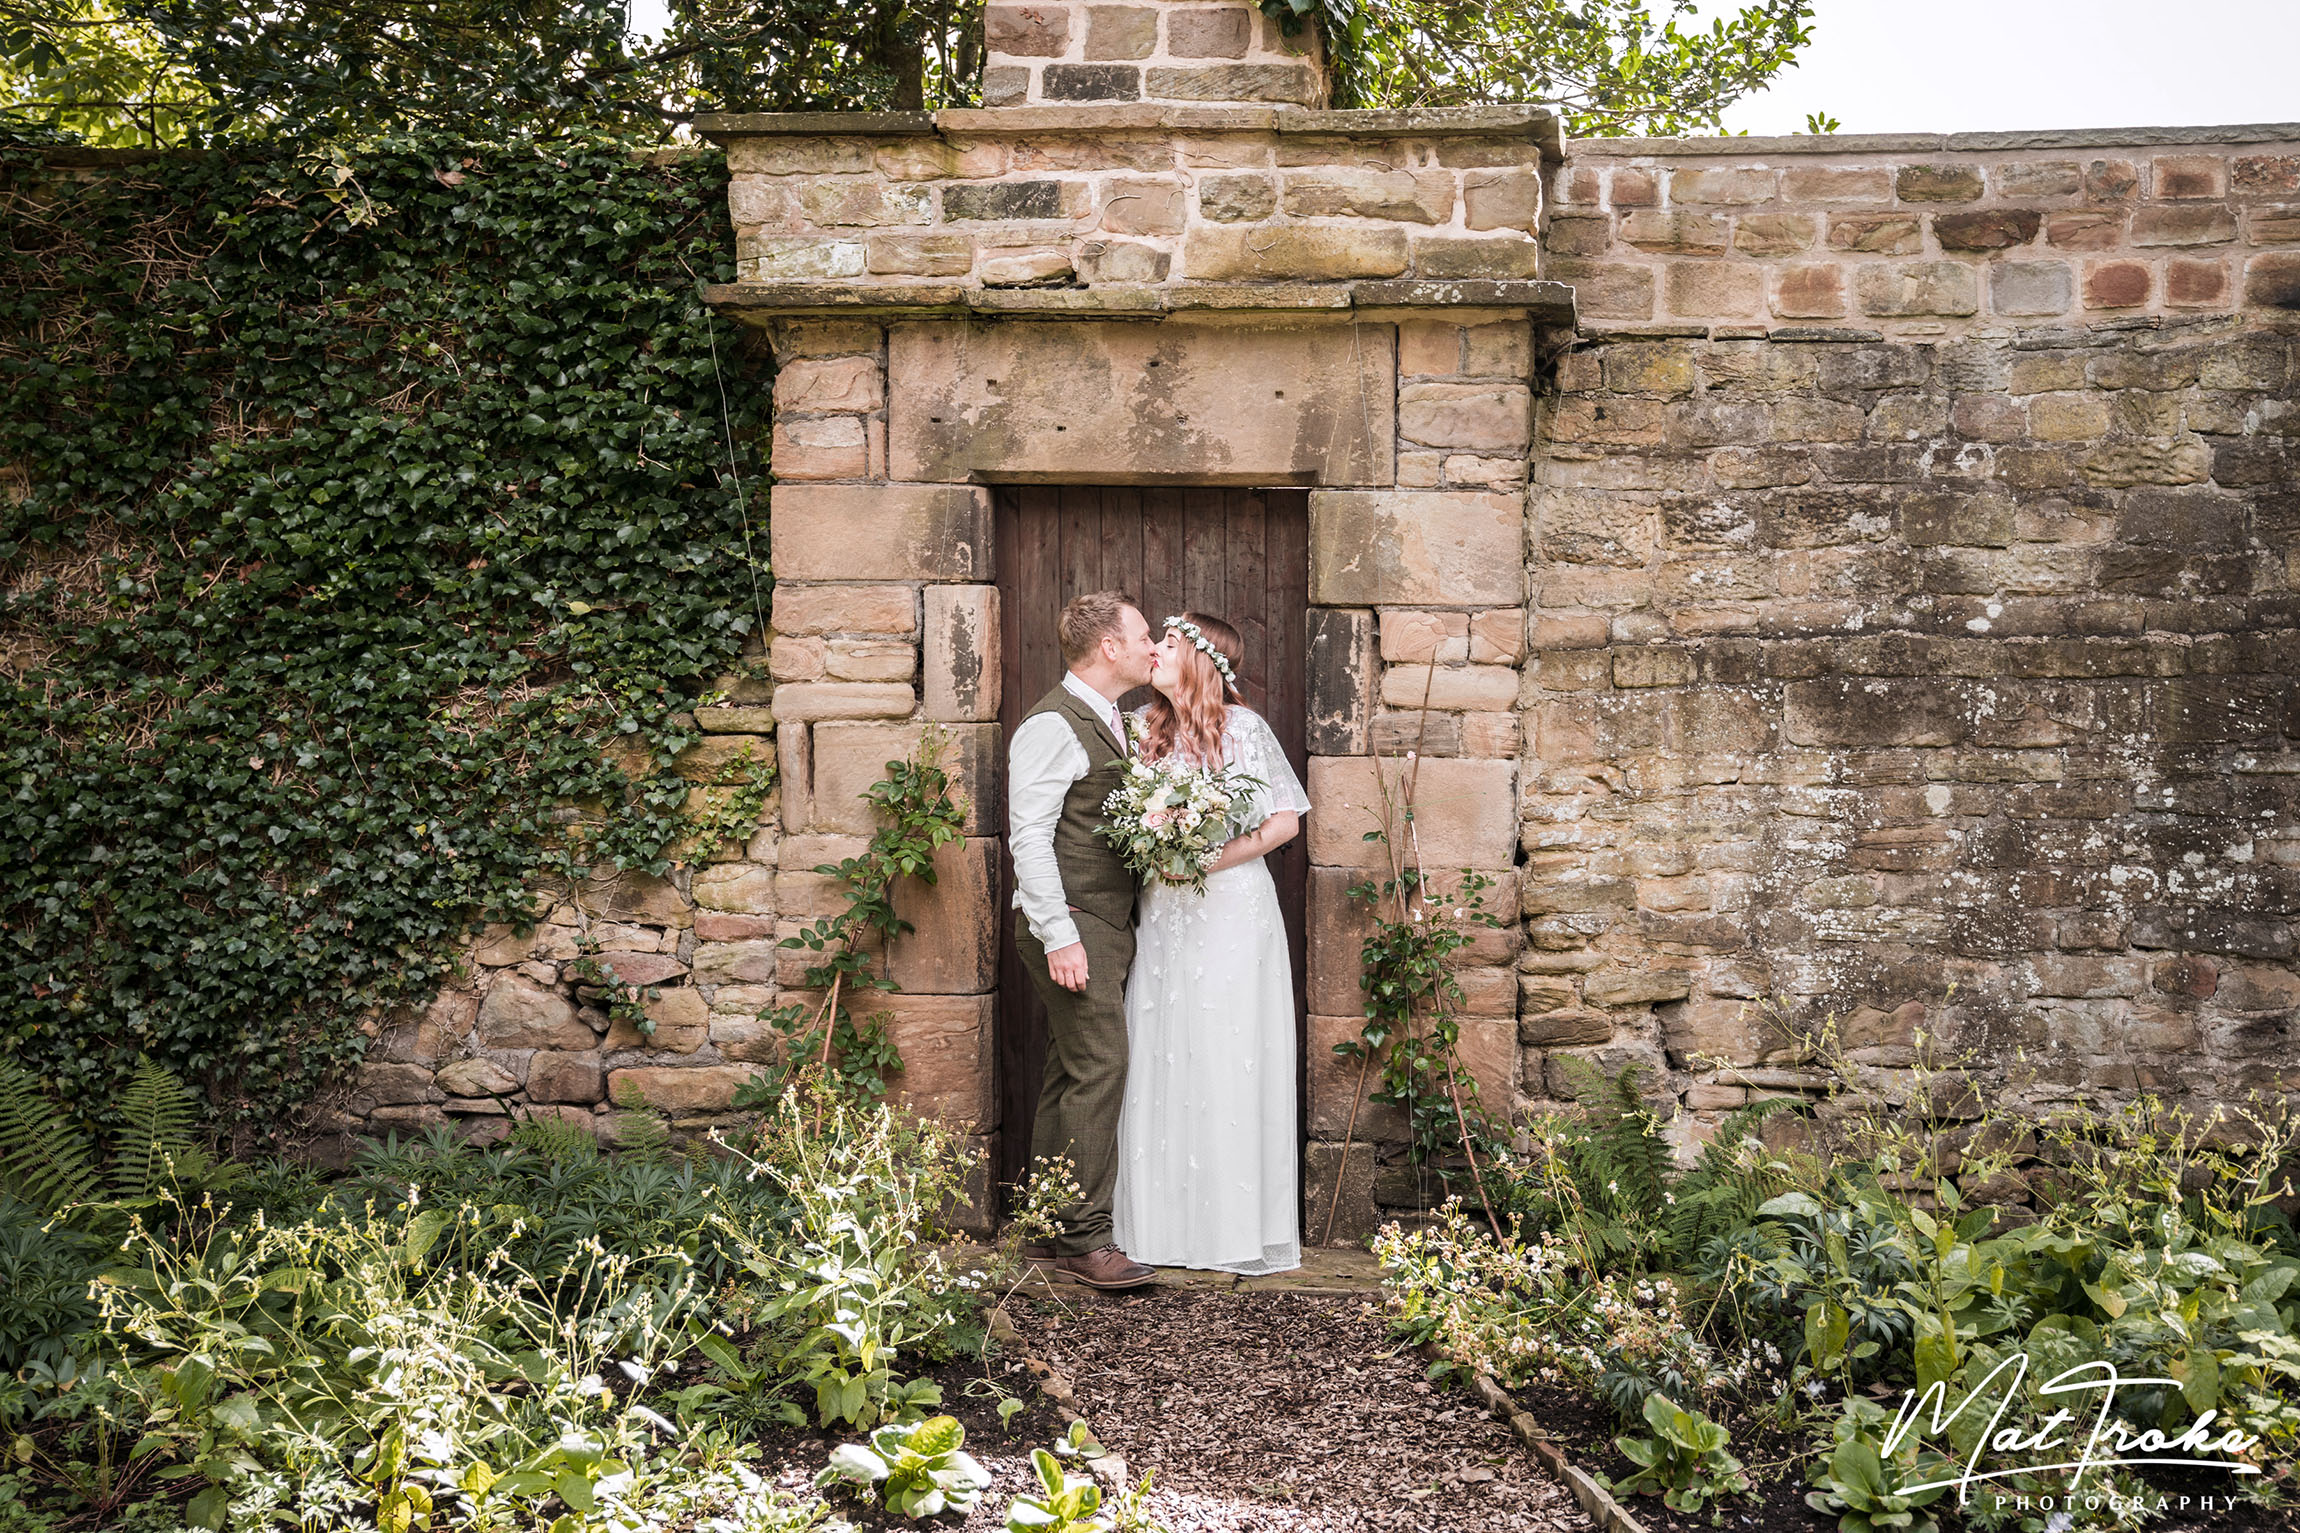 Dronfield Hall Barn Chesterfield Wedding Photographer - Mat Troke Photography